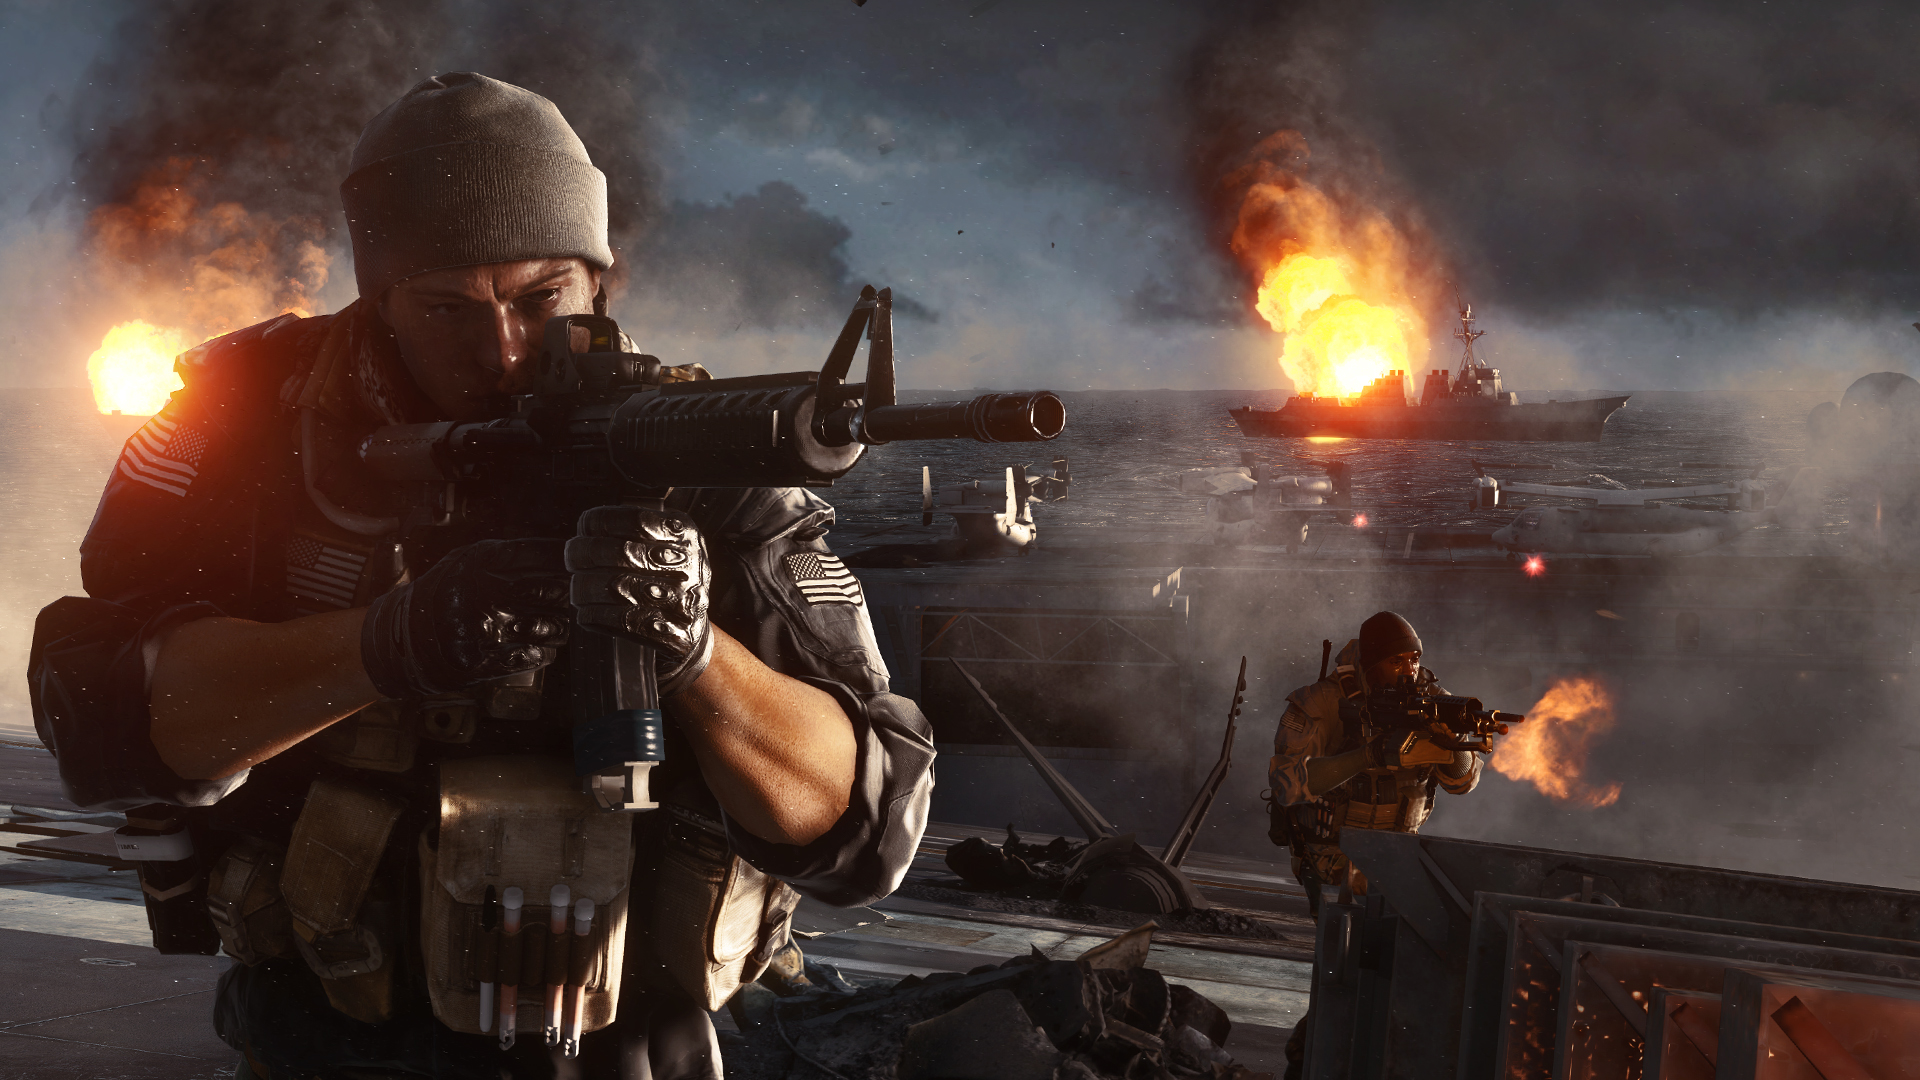 Download Wallpaper 1280x1280 Battlefield 4 Game Ea: EA Offering Free DLC For Battlefield Games